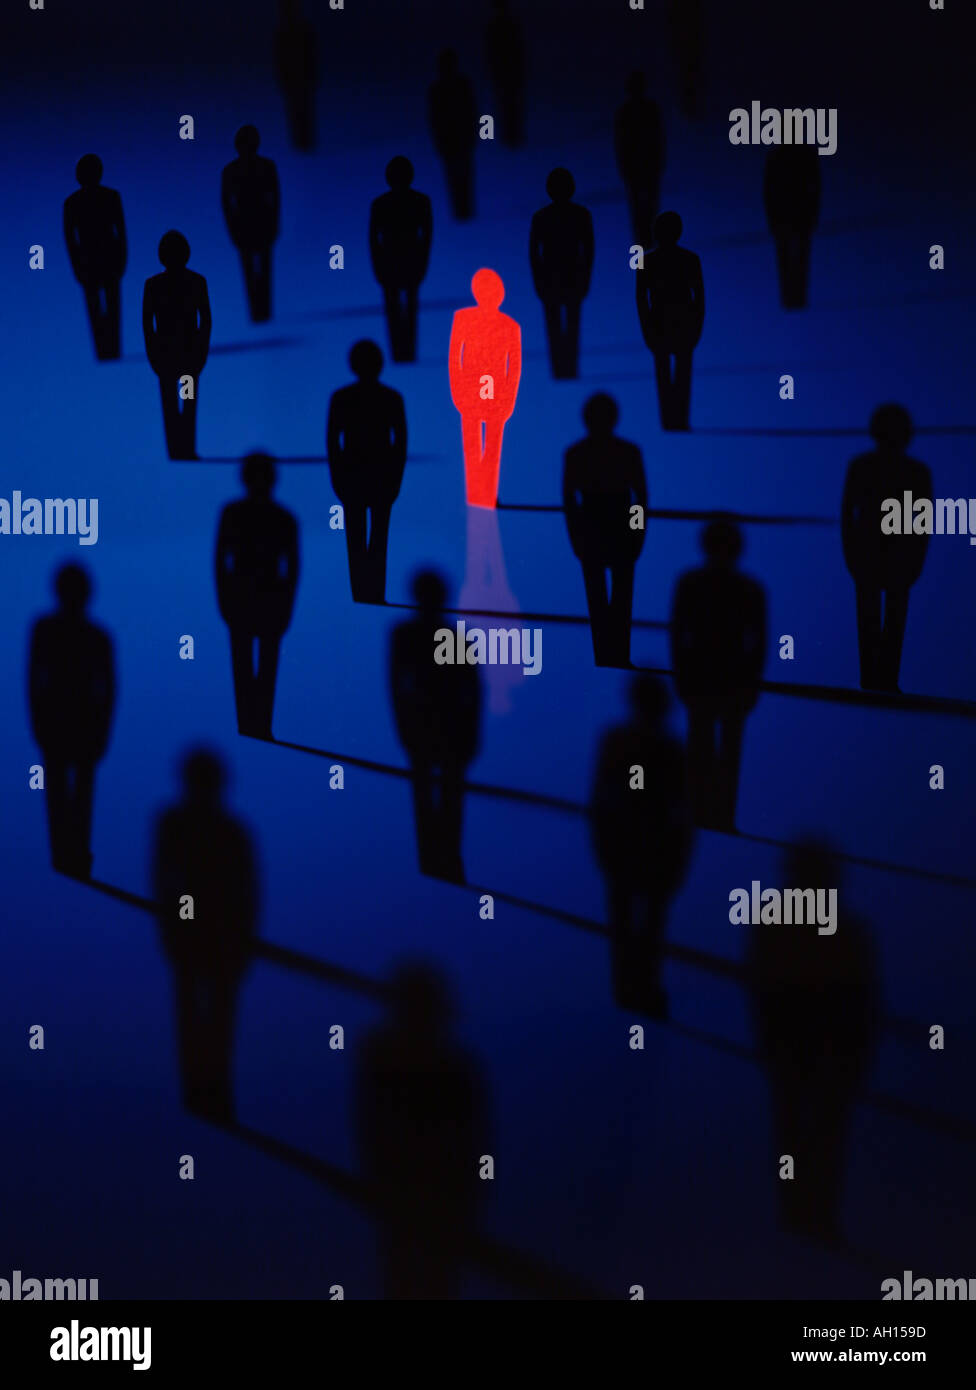 Solitary red person in a field of blue people - Stock Image